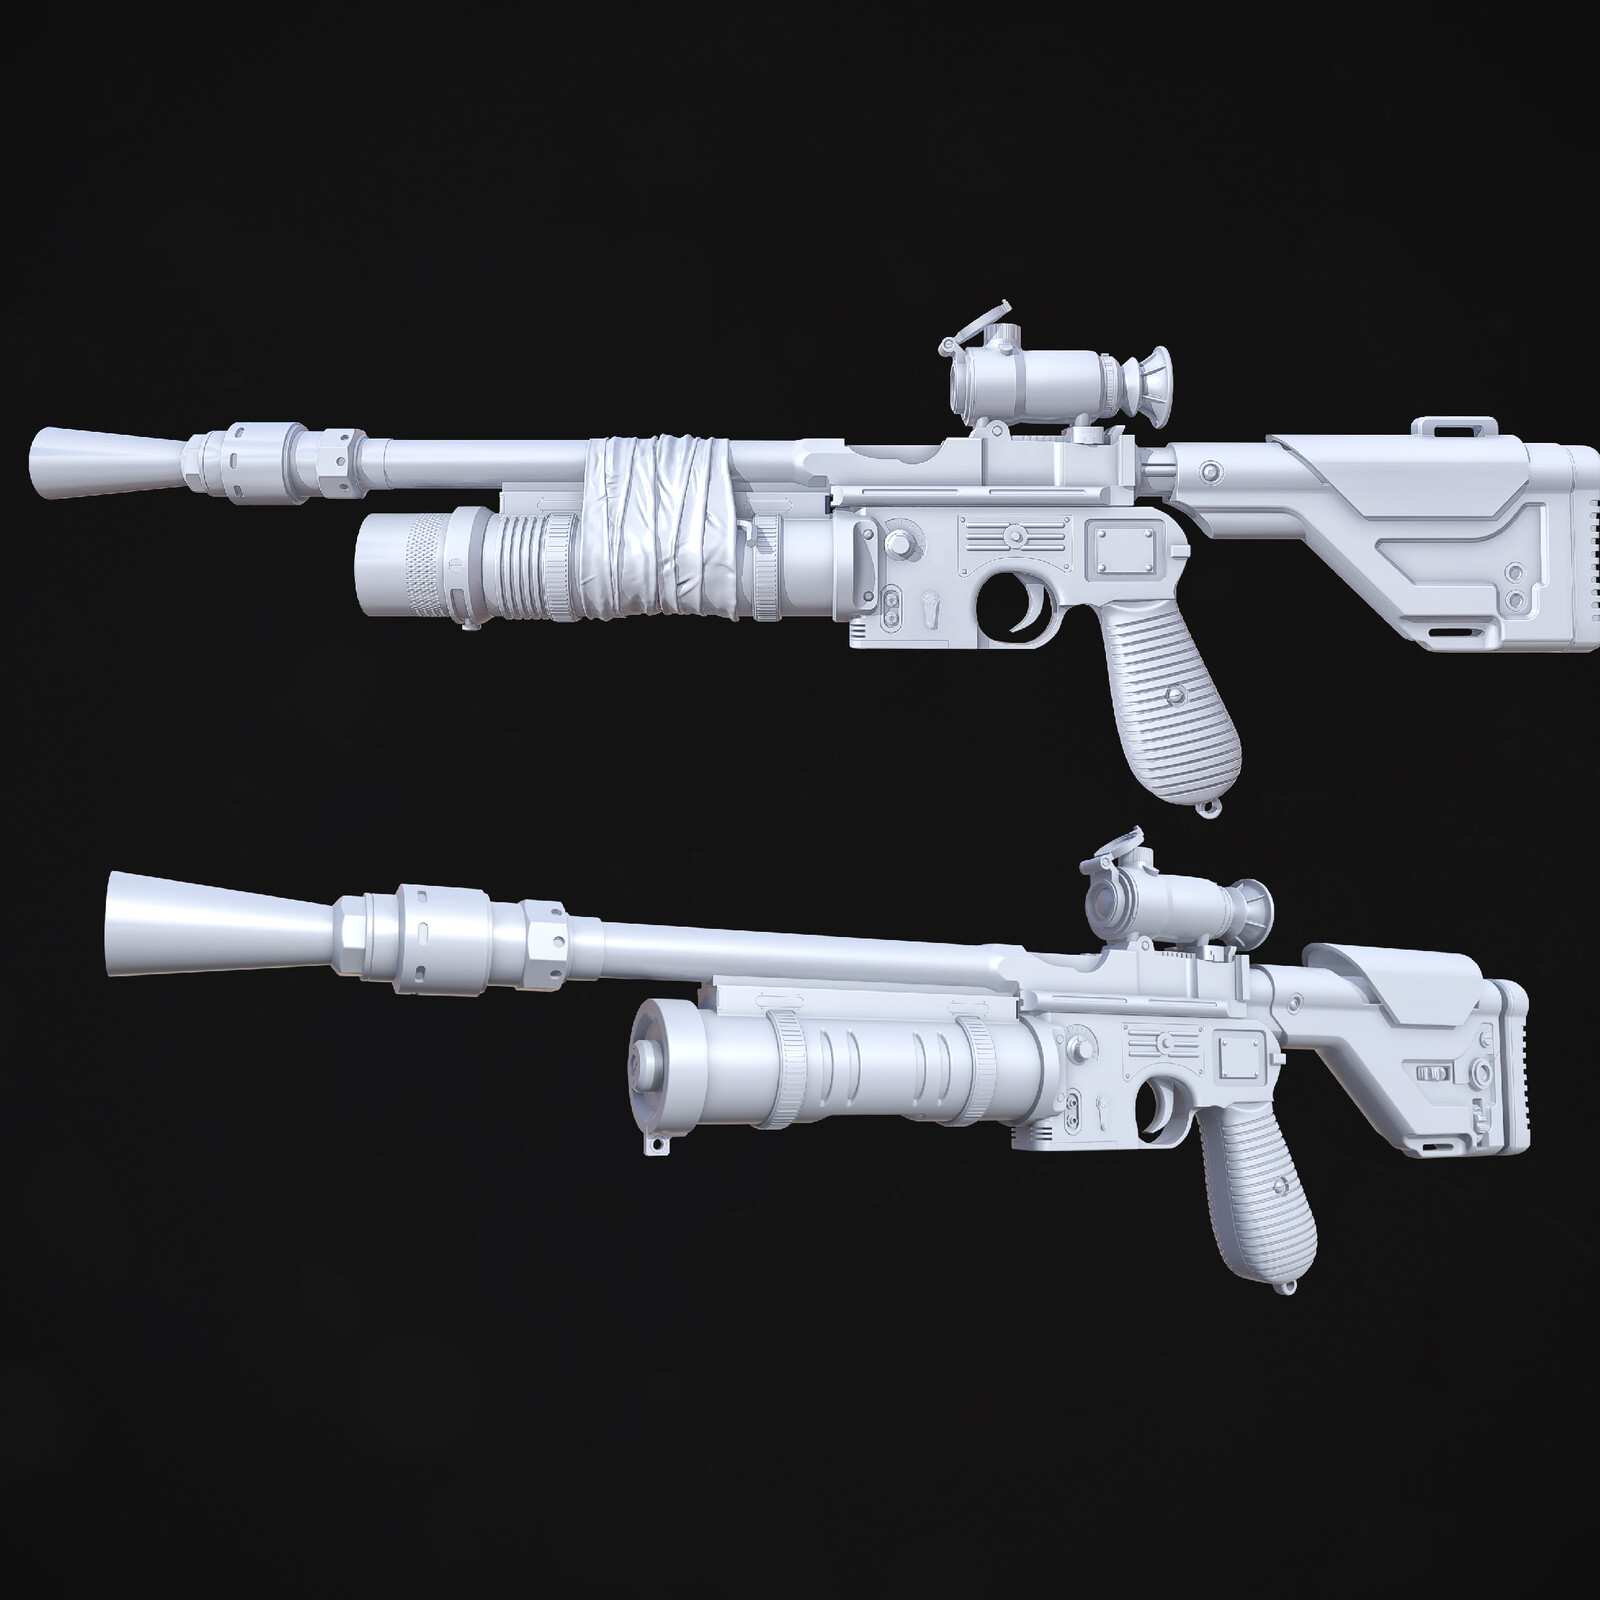 Blaster and Rifle weapon set - Highpoly model